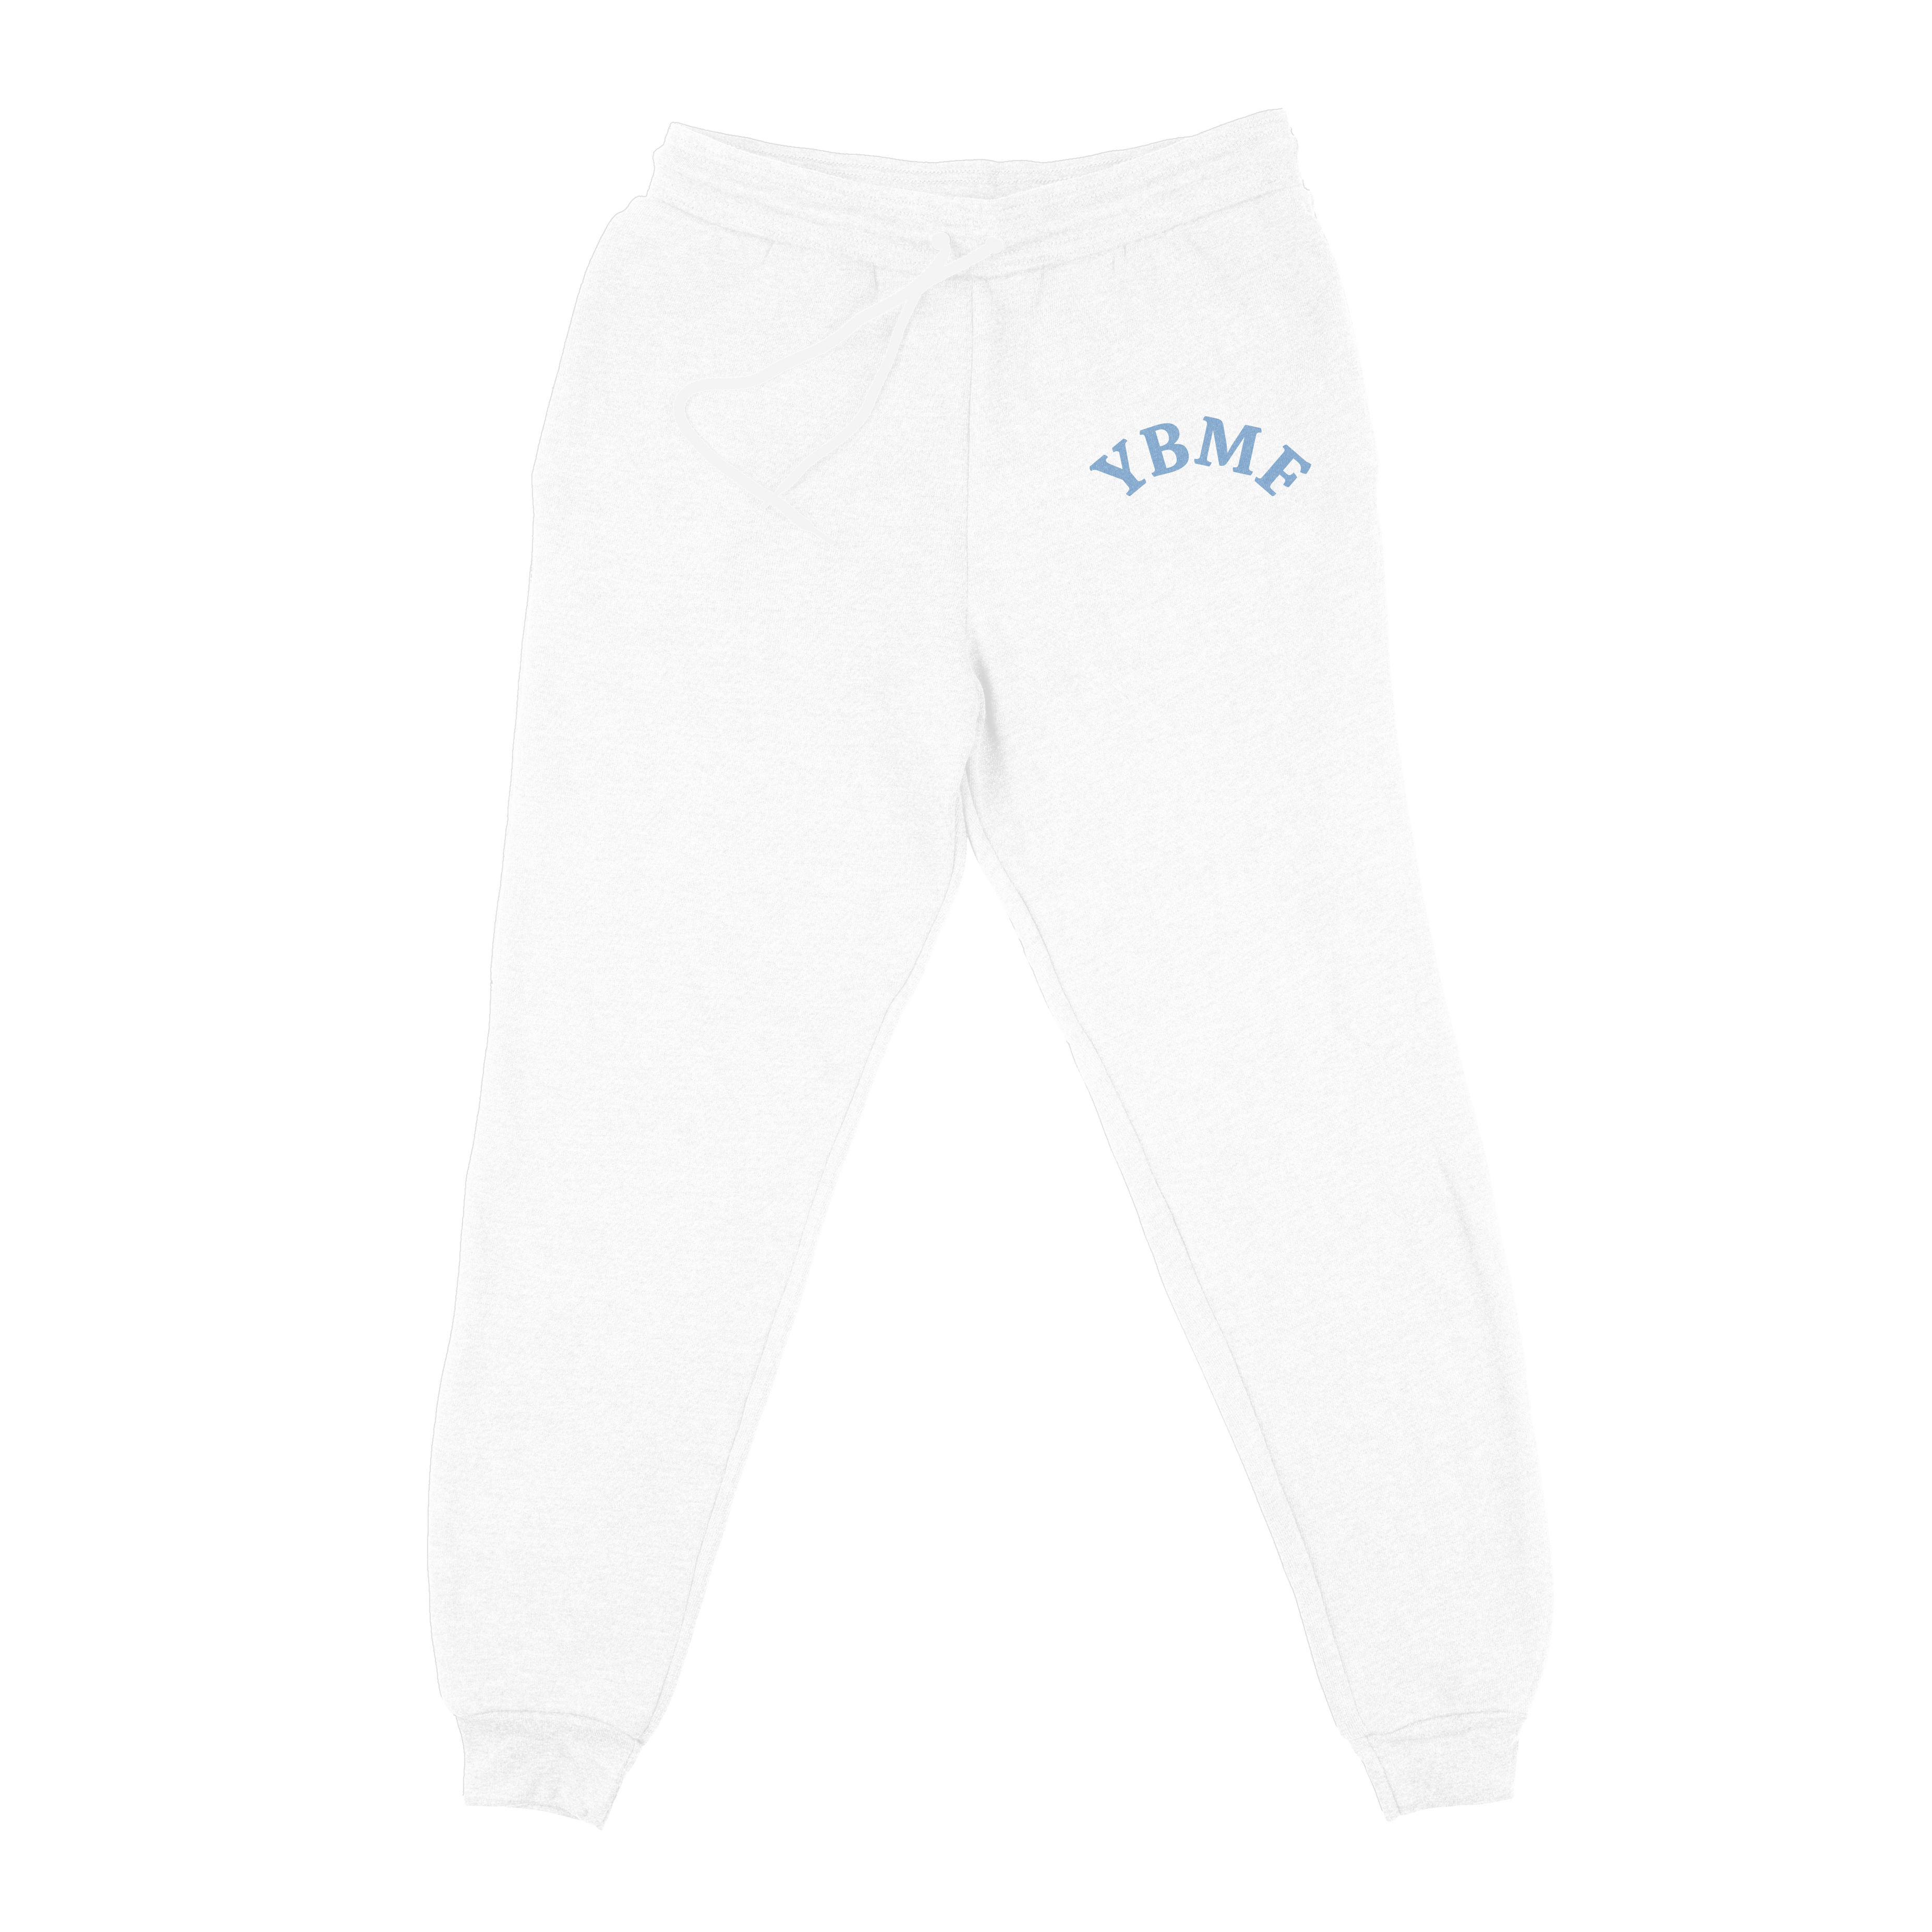 YBMF Sweatpants